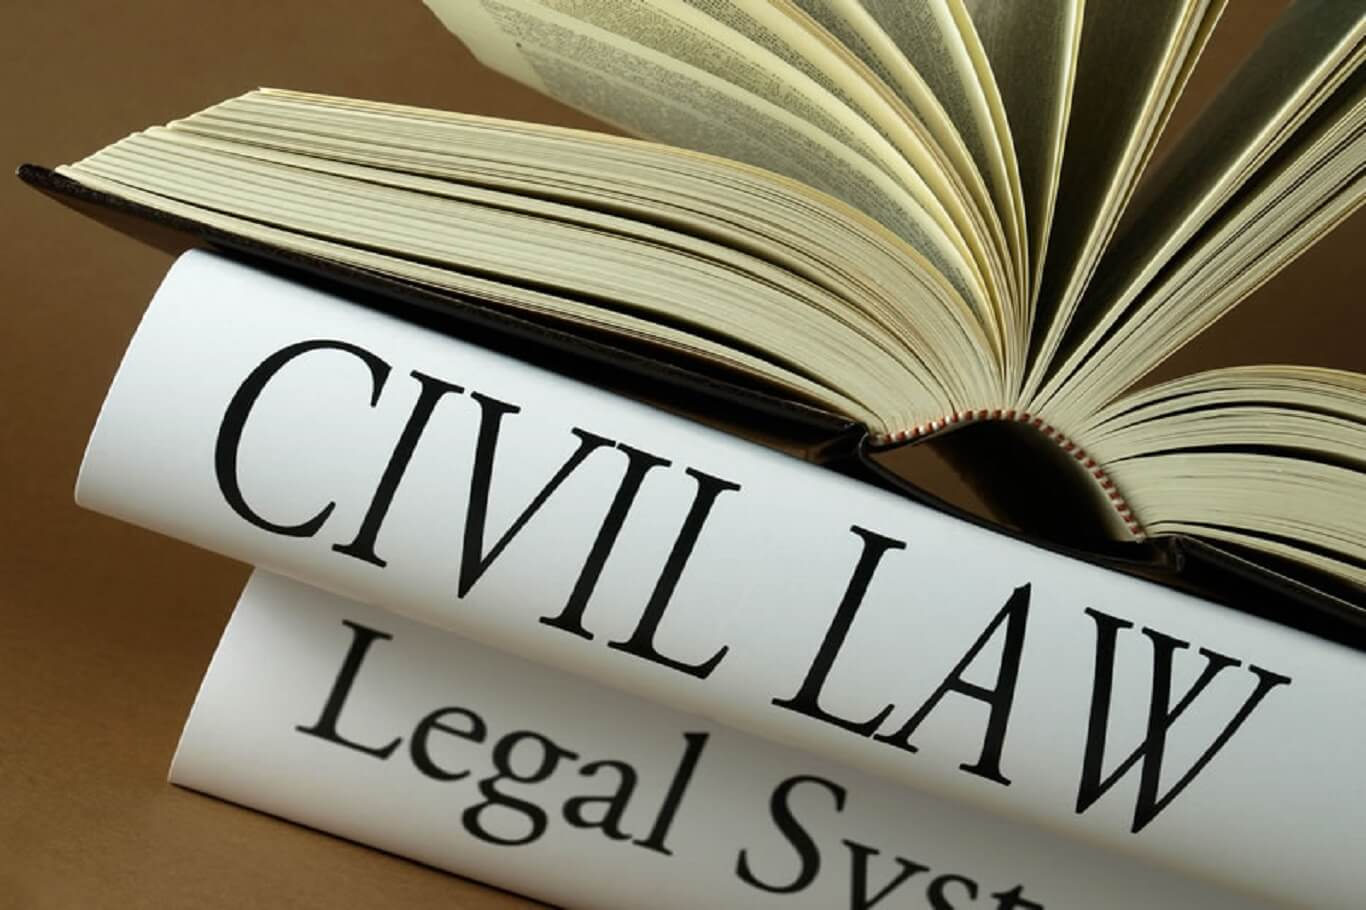 which of the following would be an example of a civil lawsuit?